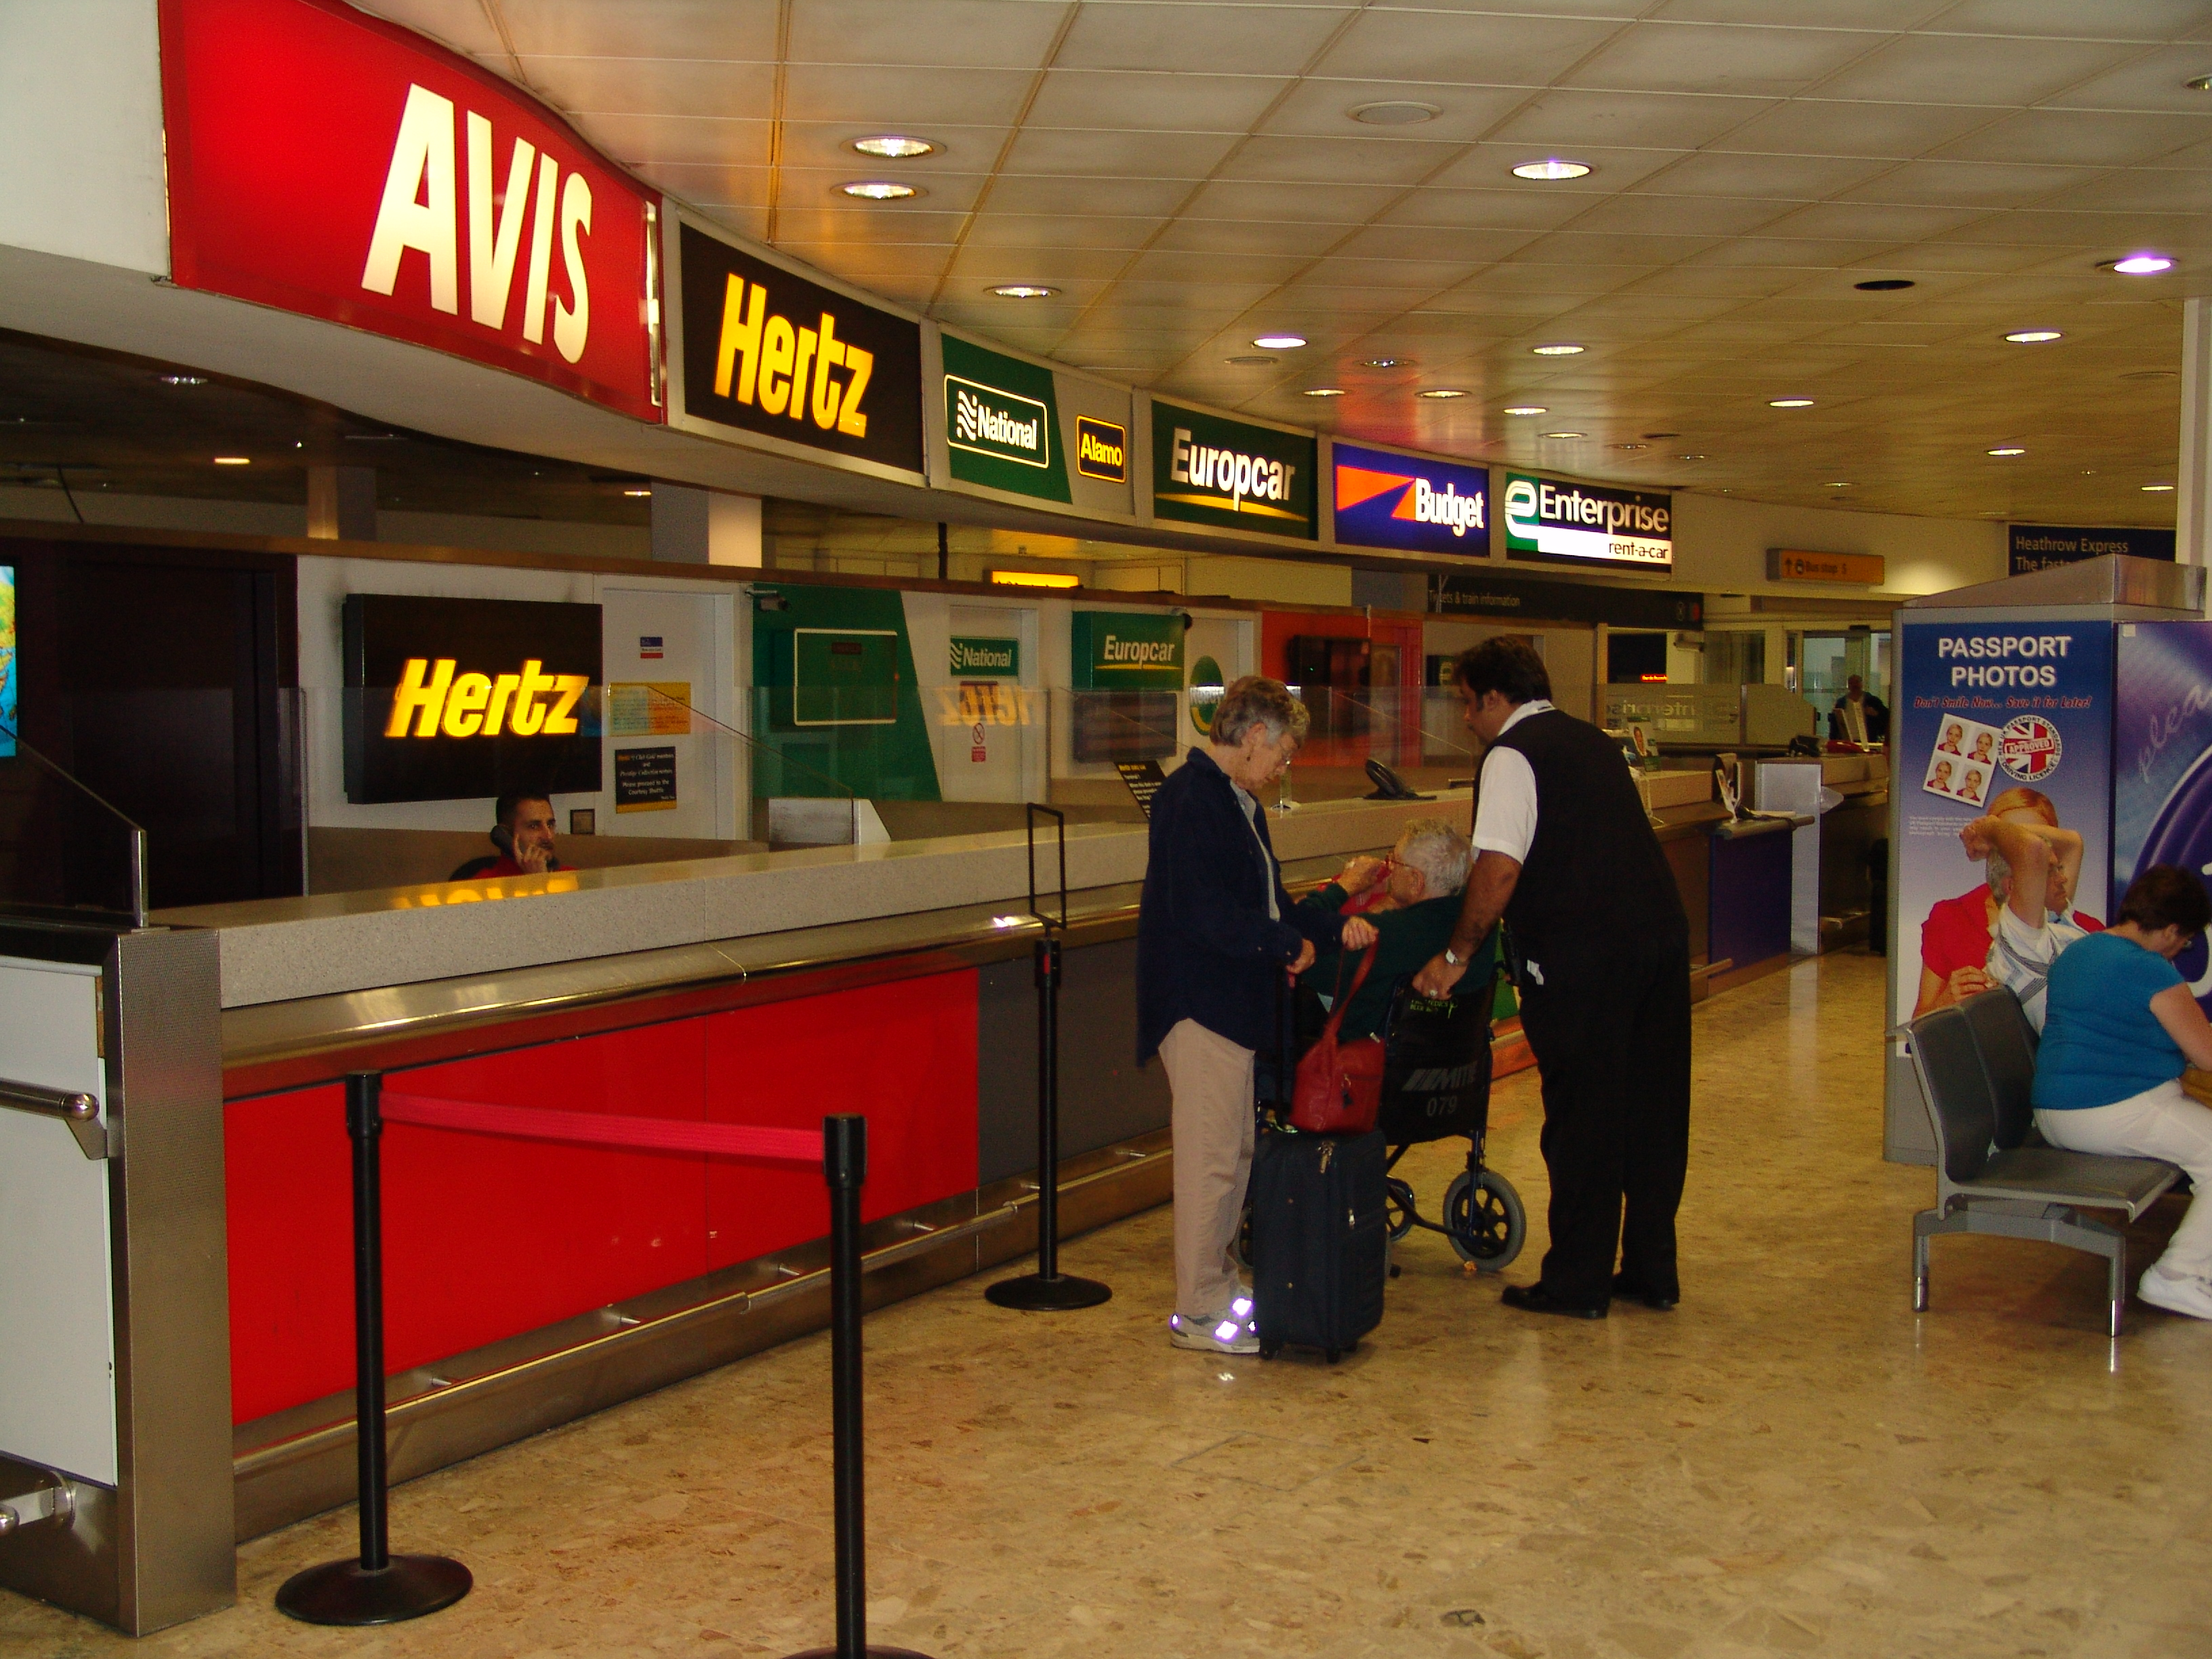 Hertz car rental at seatac airport